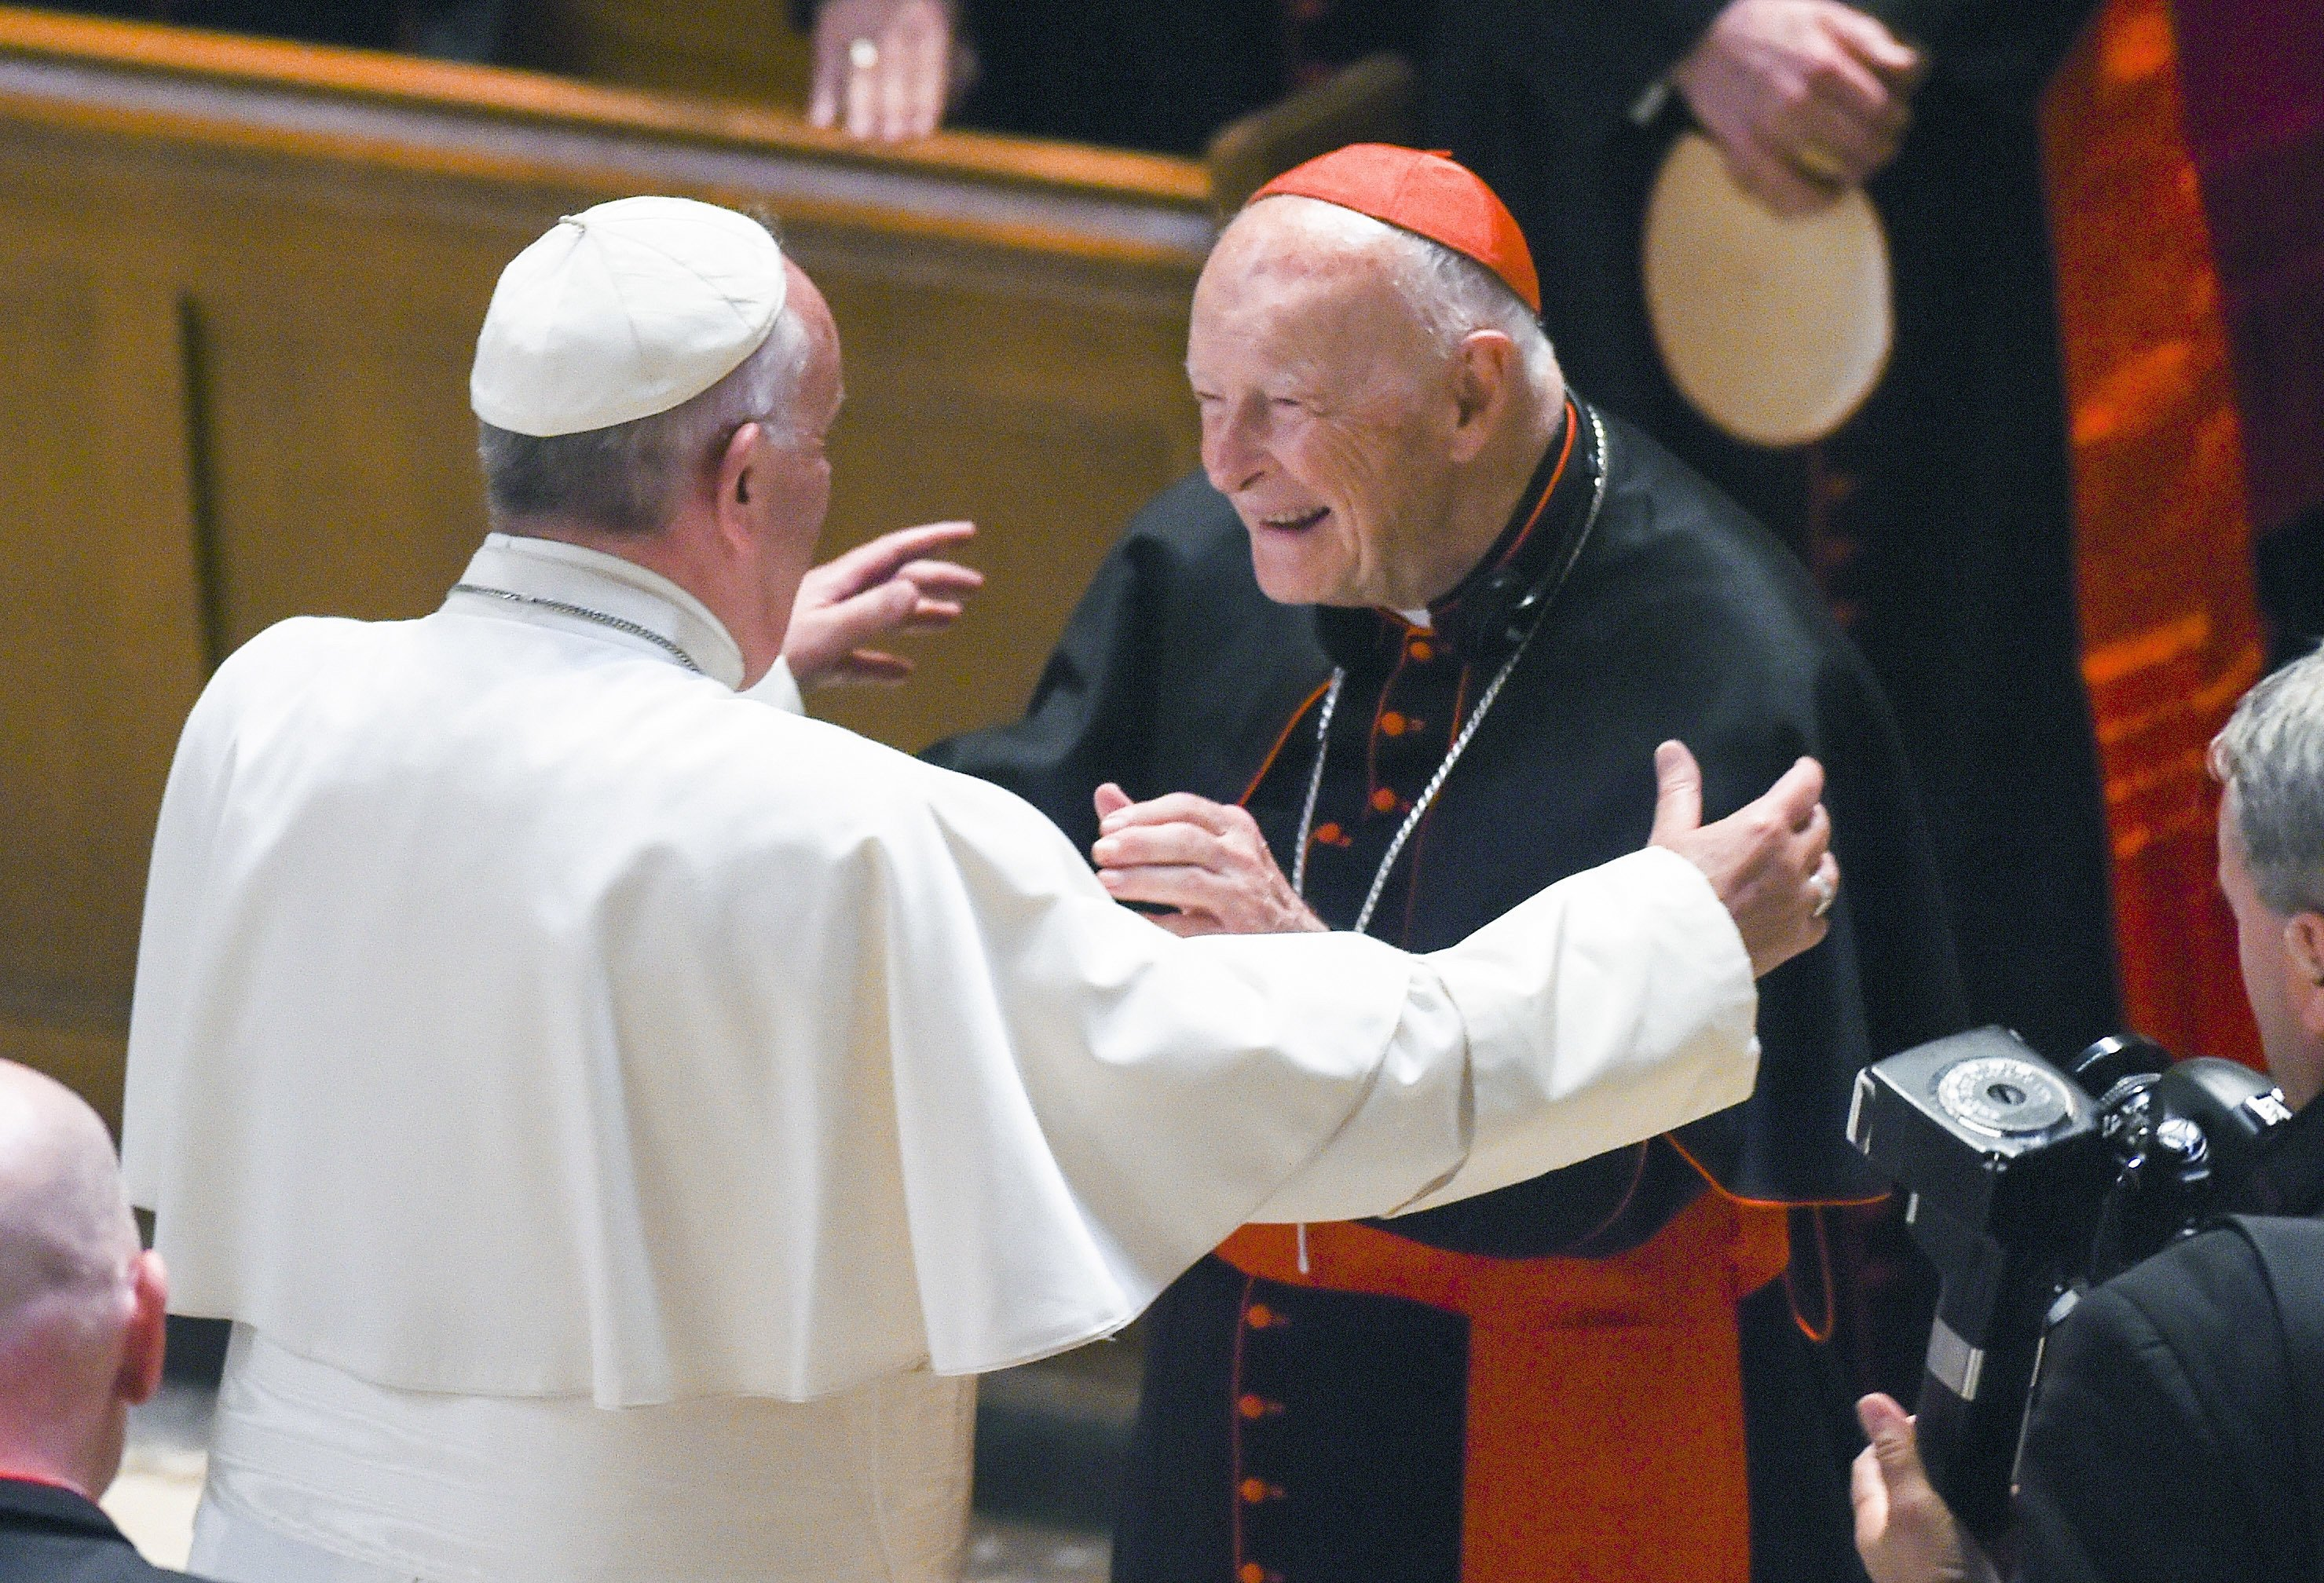 Revelations of US cardinal sex abuse will force pope's hand